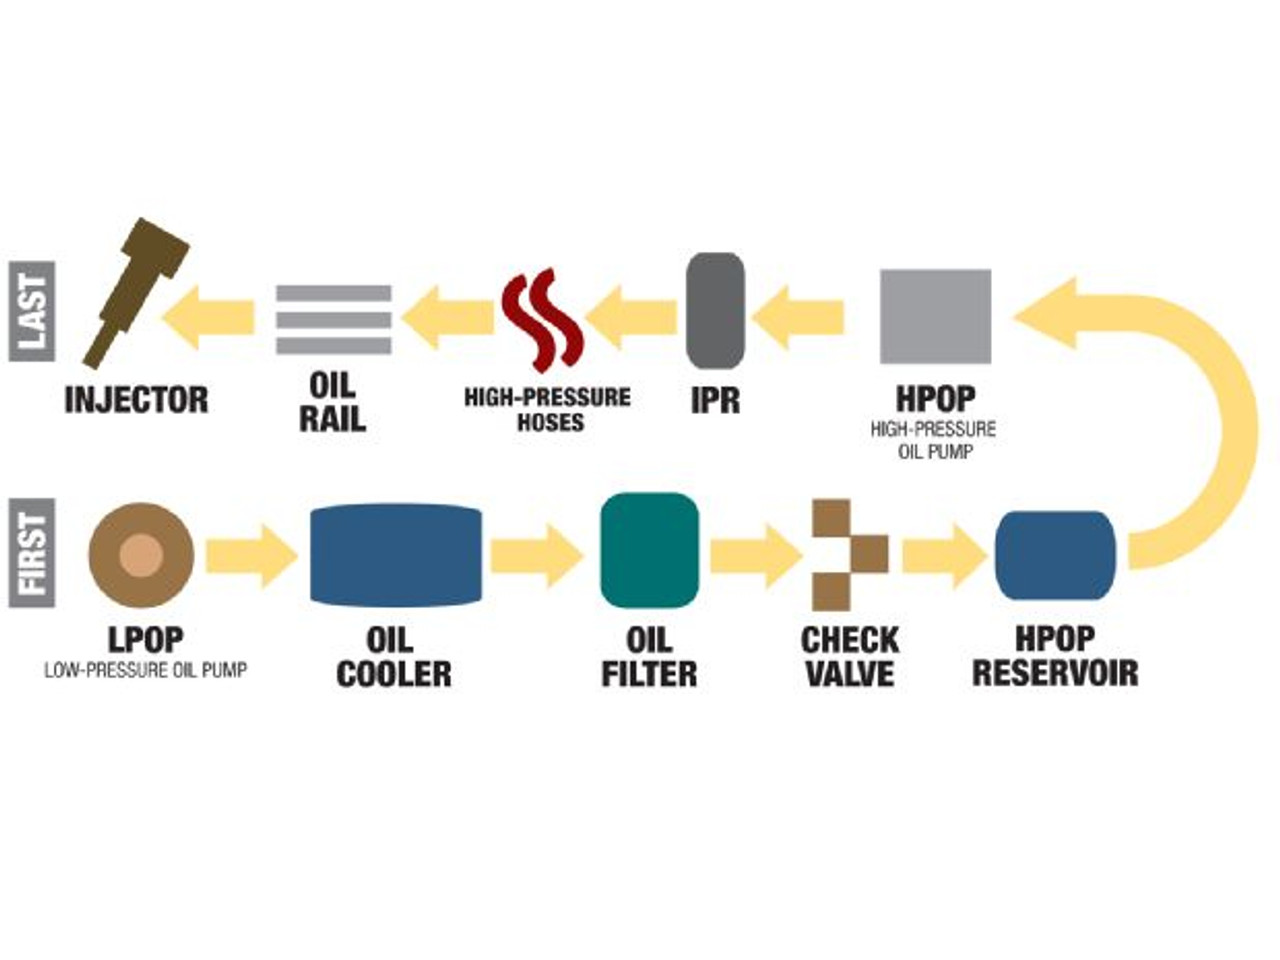 HEUI - How High-Pressure Oil Injection Systems Work